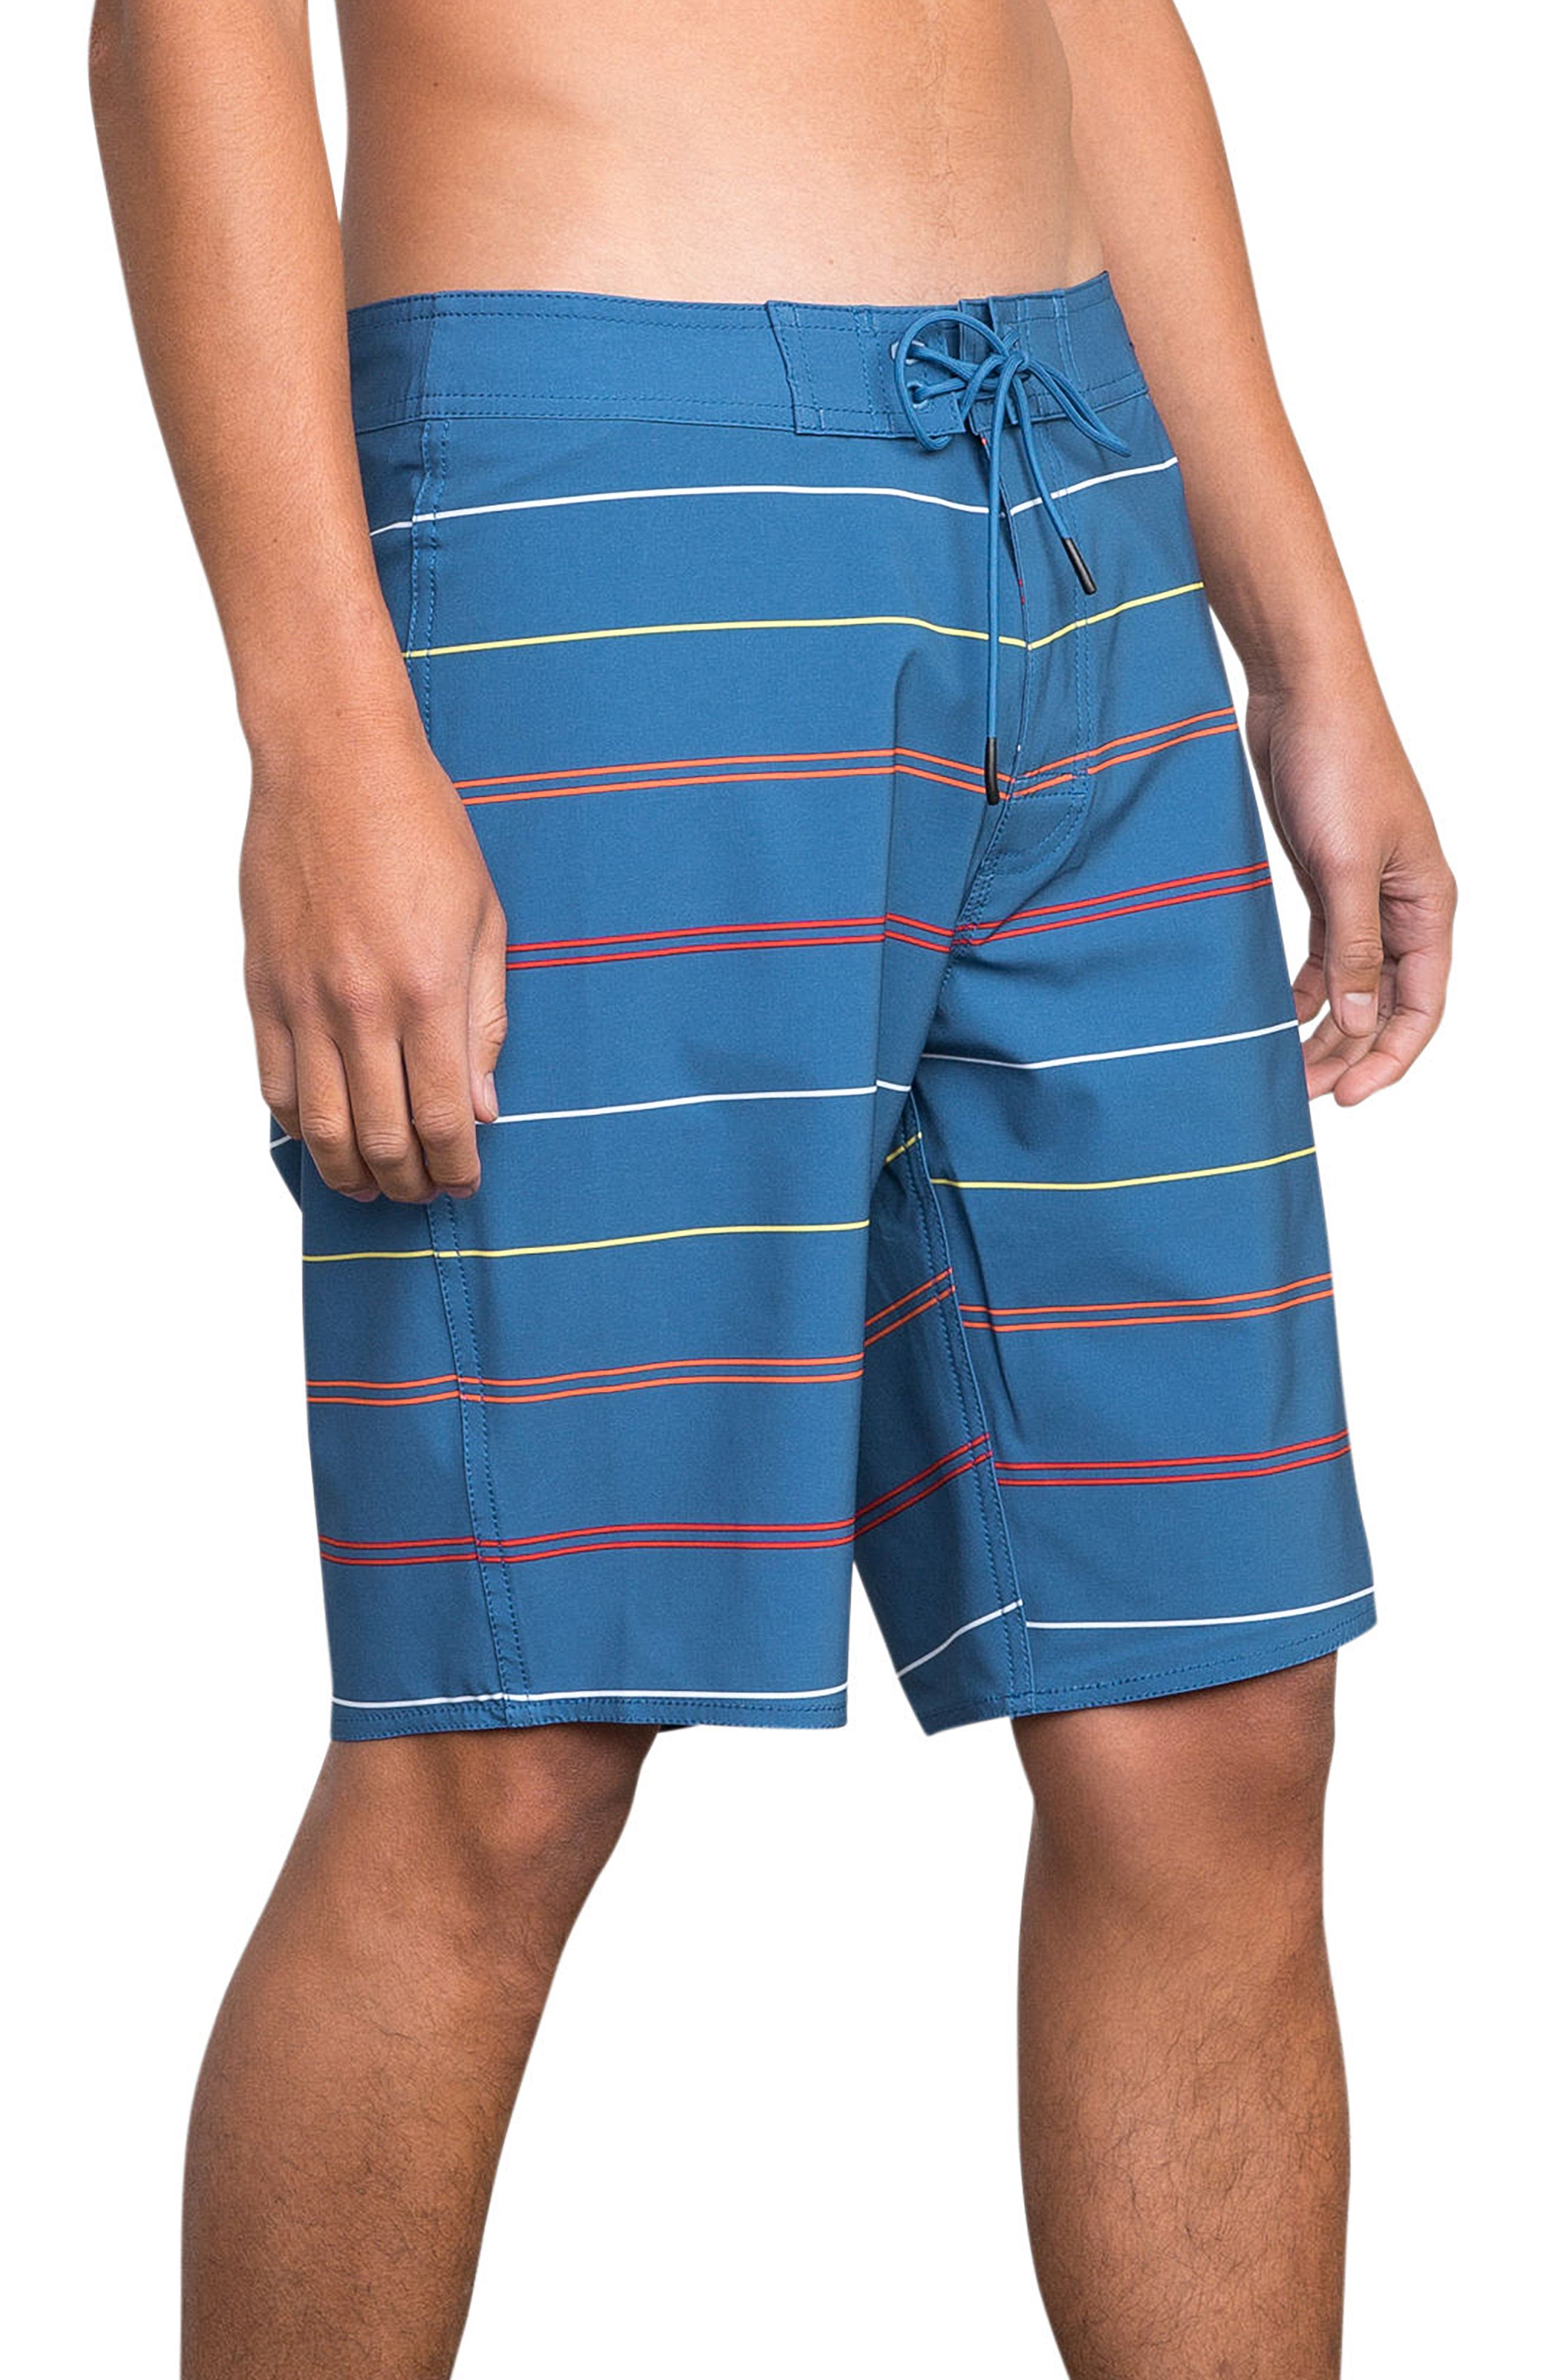 Middle Swim Trunks,                             Alternate thumbnail 4, color,                             COBALT